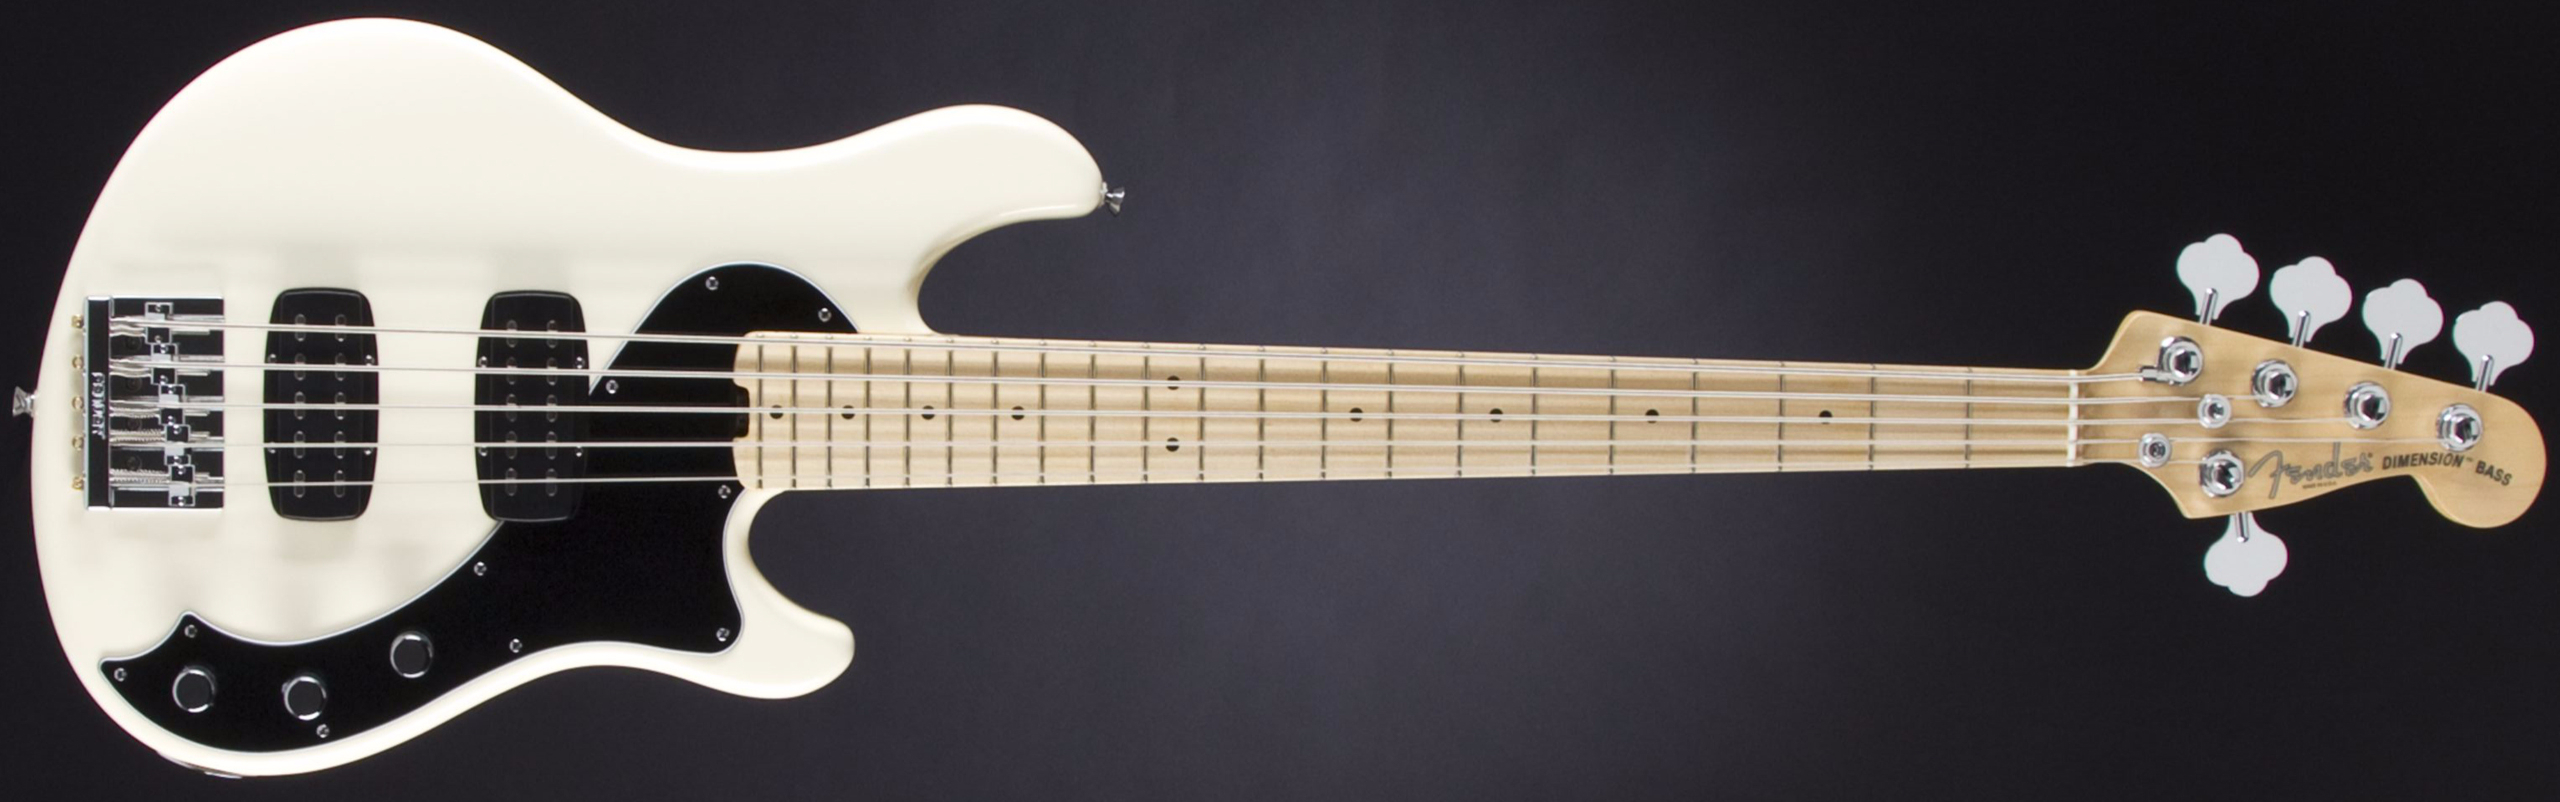 FENDER American Standard Dimension Bass V HH MN Olympic White